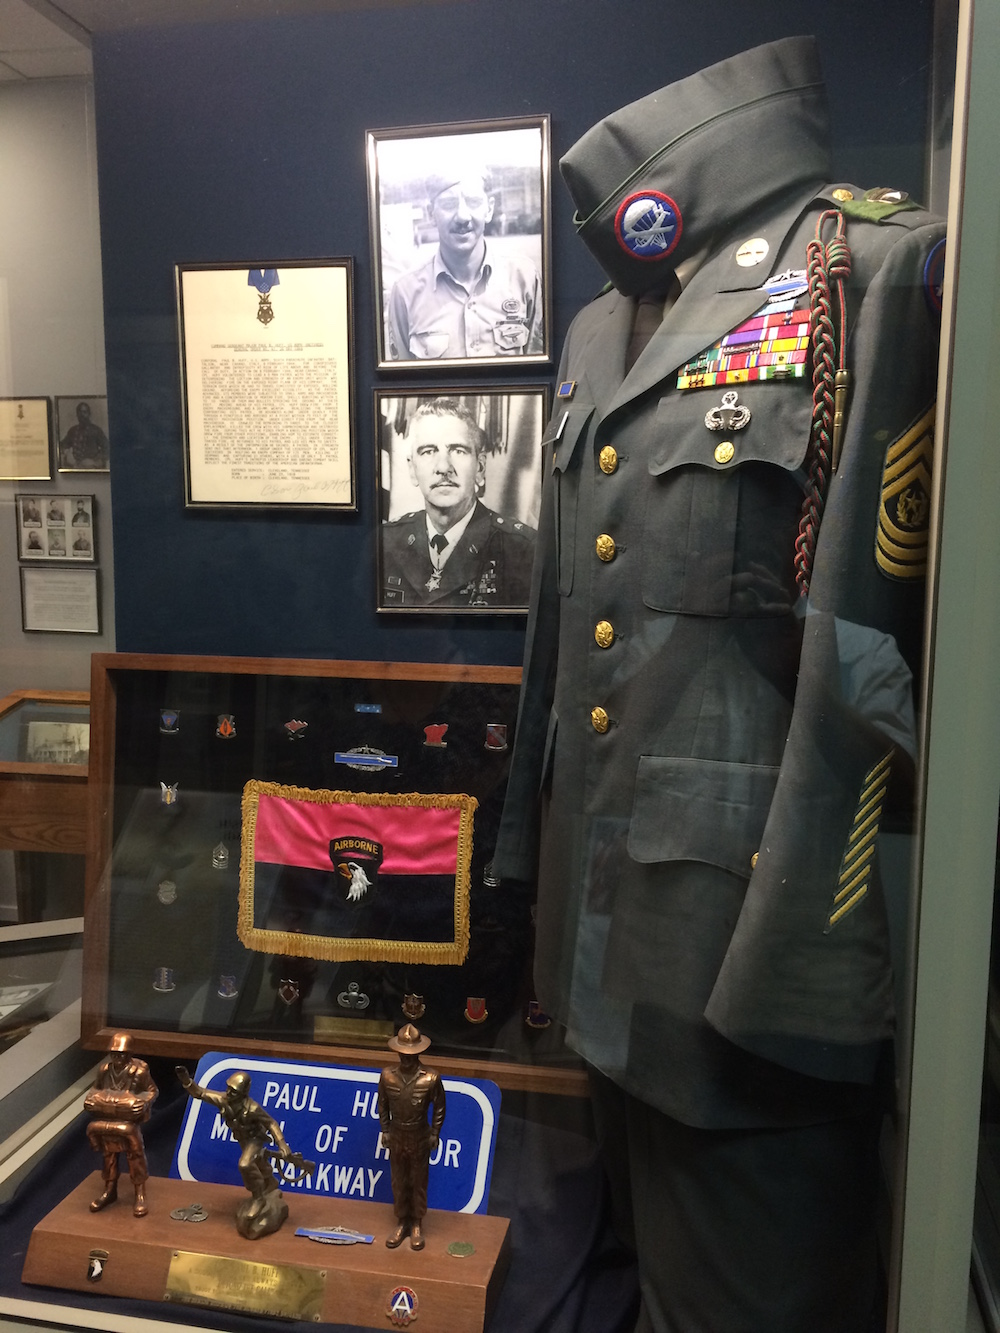 Paul Bert Huff received a Medal of Honor for his actions in WWII